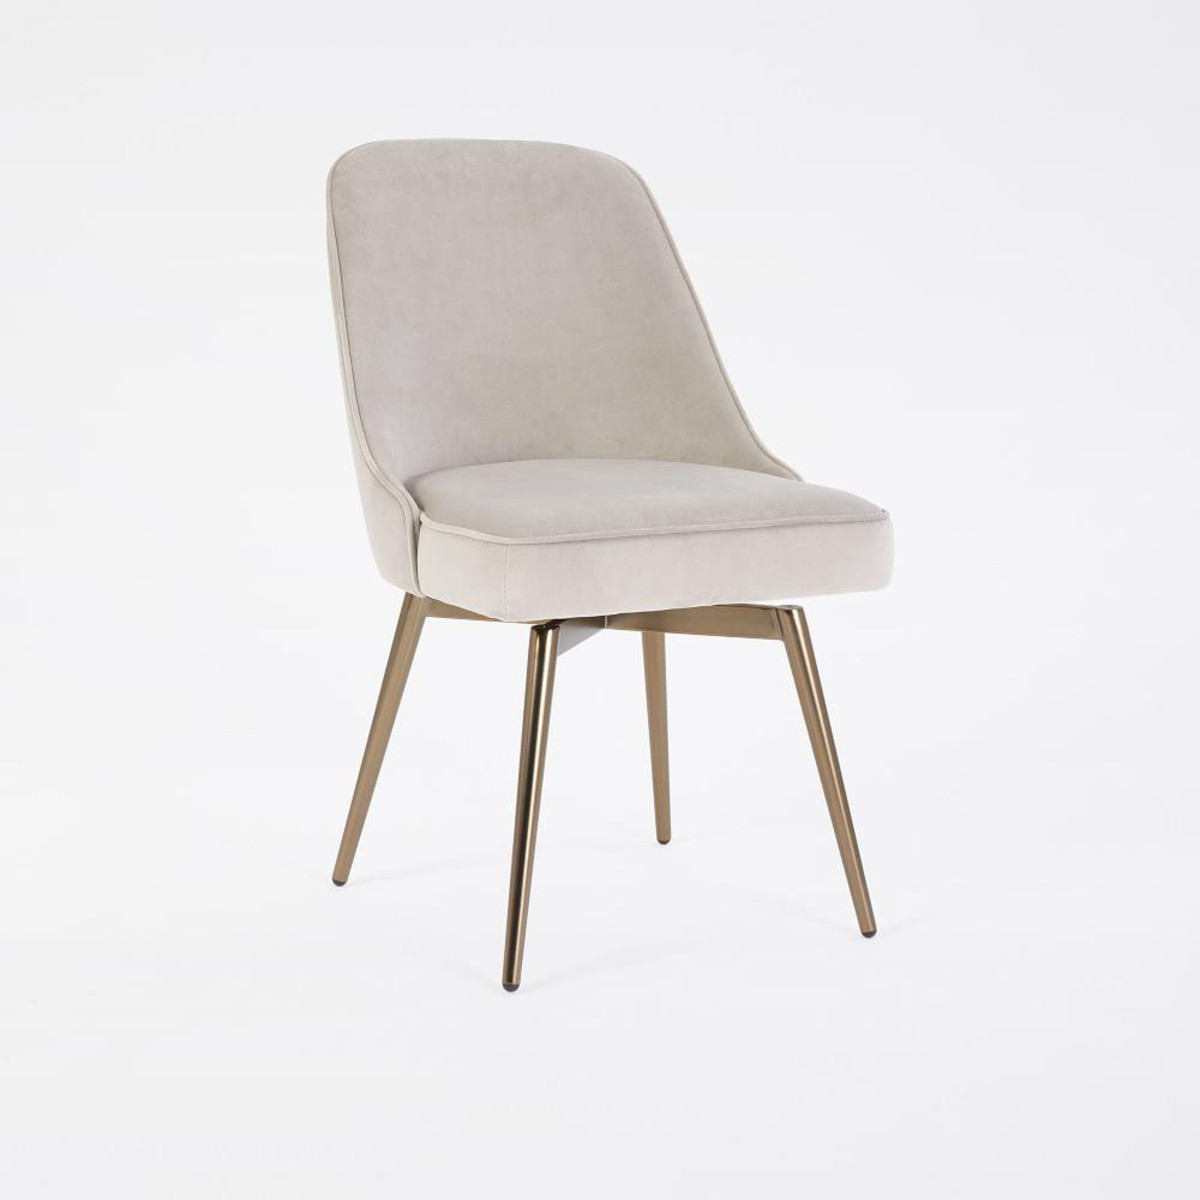 Best ideas about Mid Century Office Chair . Save or Pin Mid Century Swivel fice Chair Velvet Now.